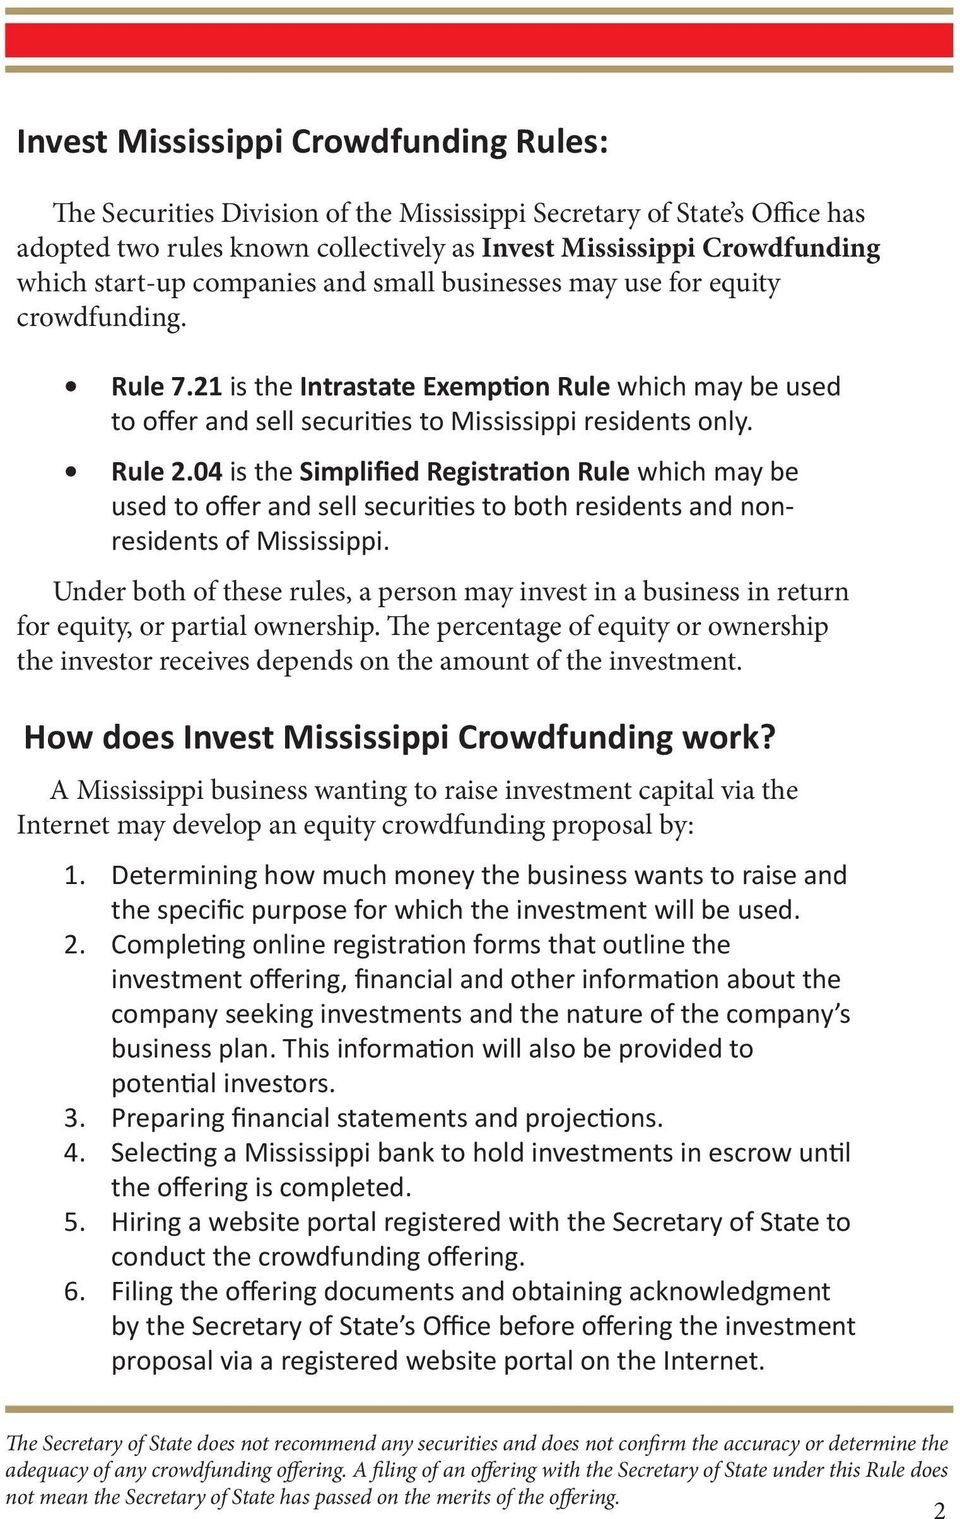 Rule 2.04 is the Simplified Registration Rule which may be used to offer and sell securities to both residents and nonresidents of Mississippi.